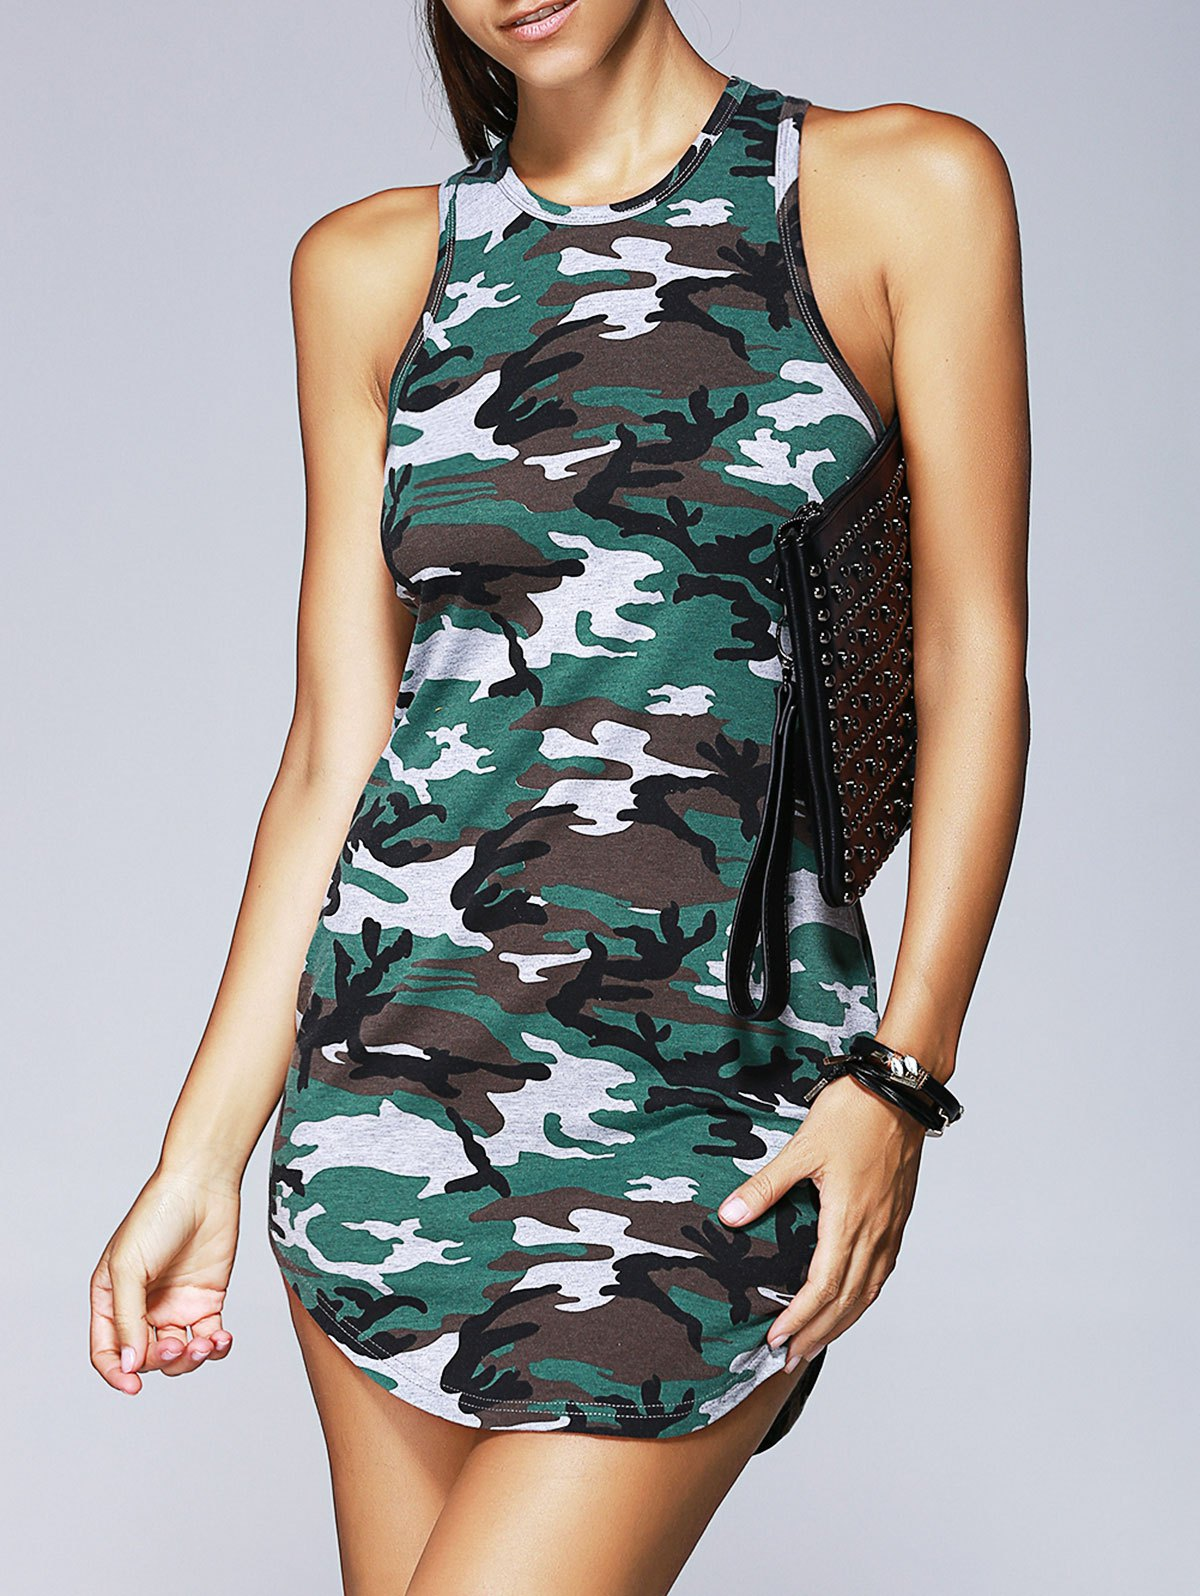 Fashionable Woman's Round Collar Camouflage Printing Tight Dress - COLORMIX L